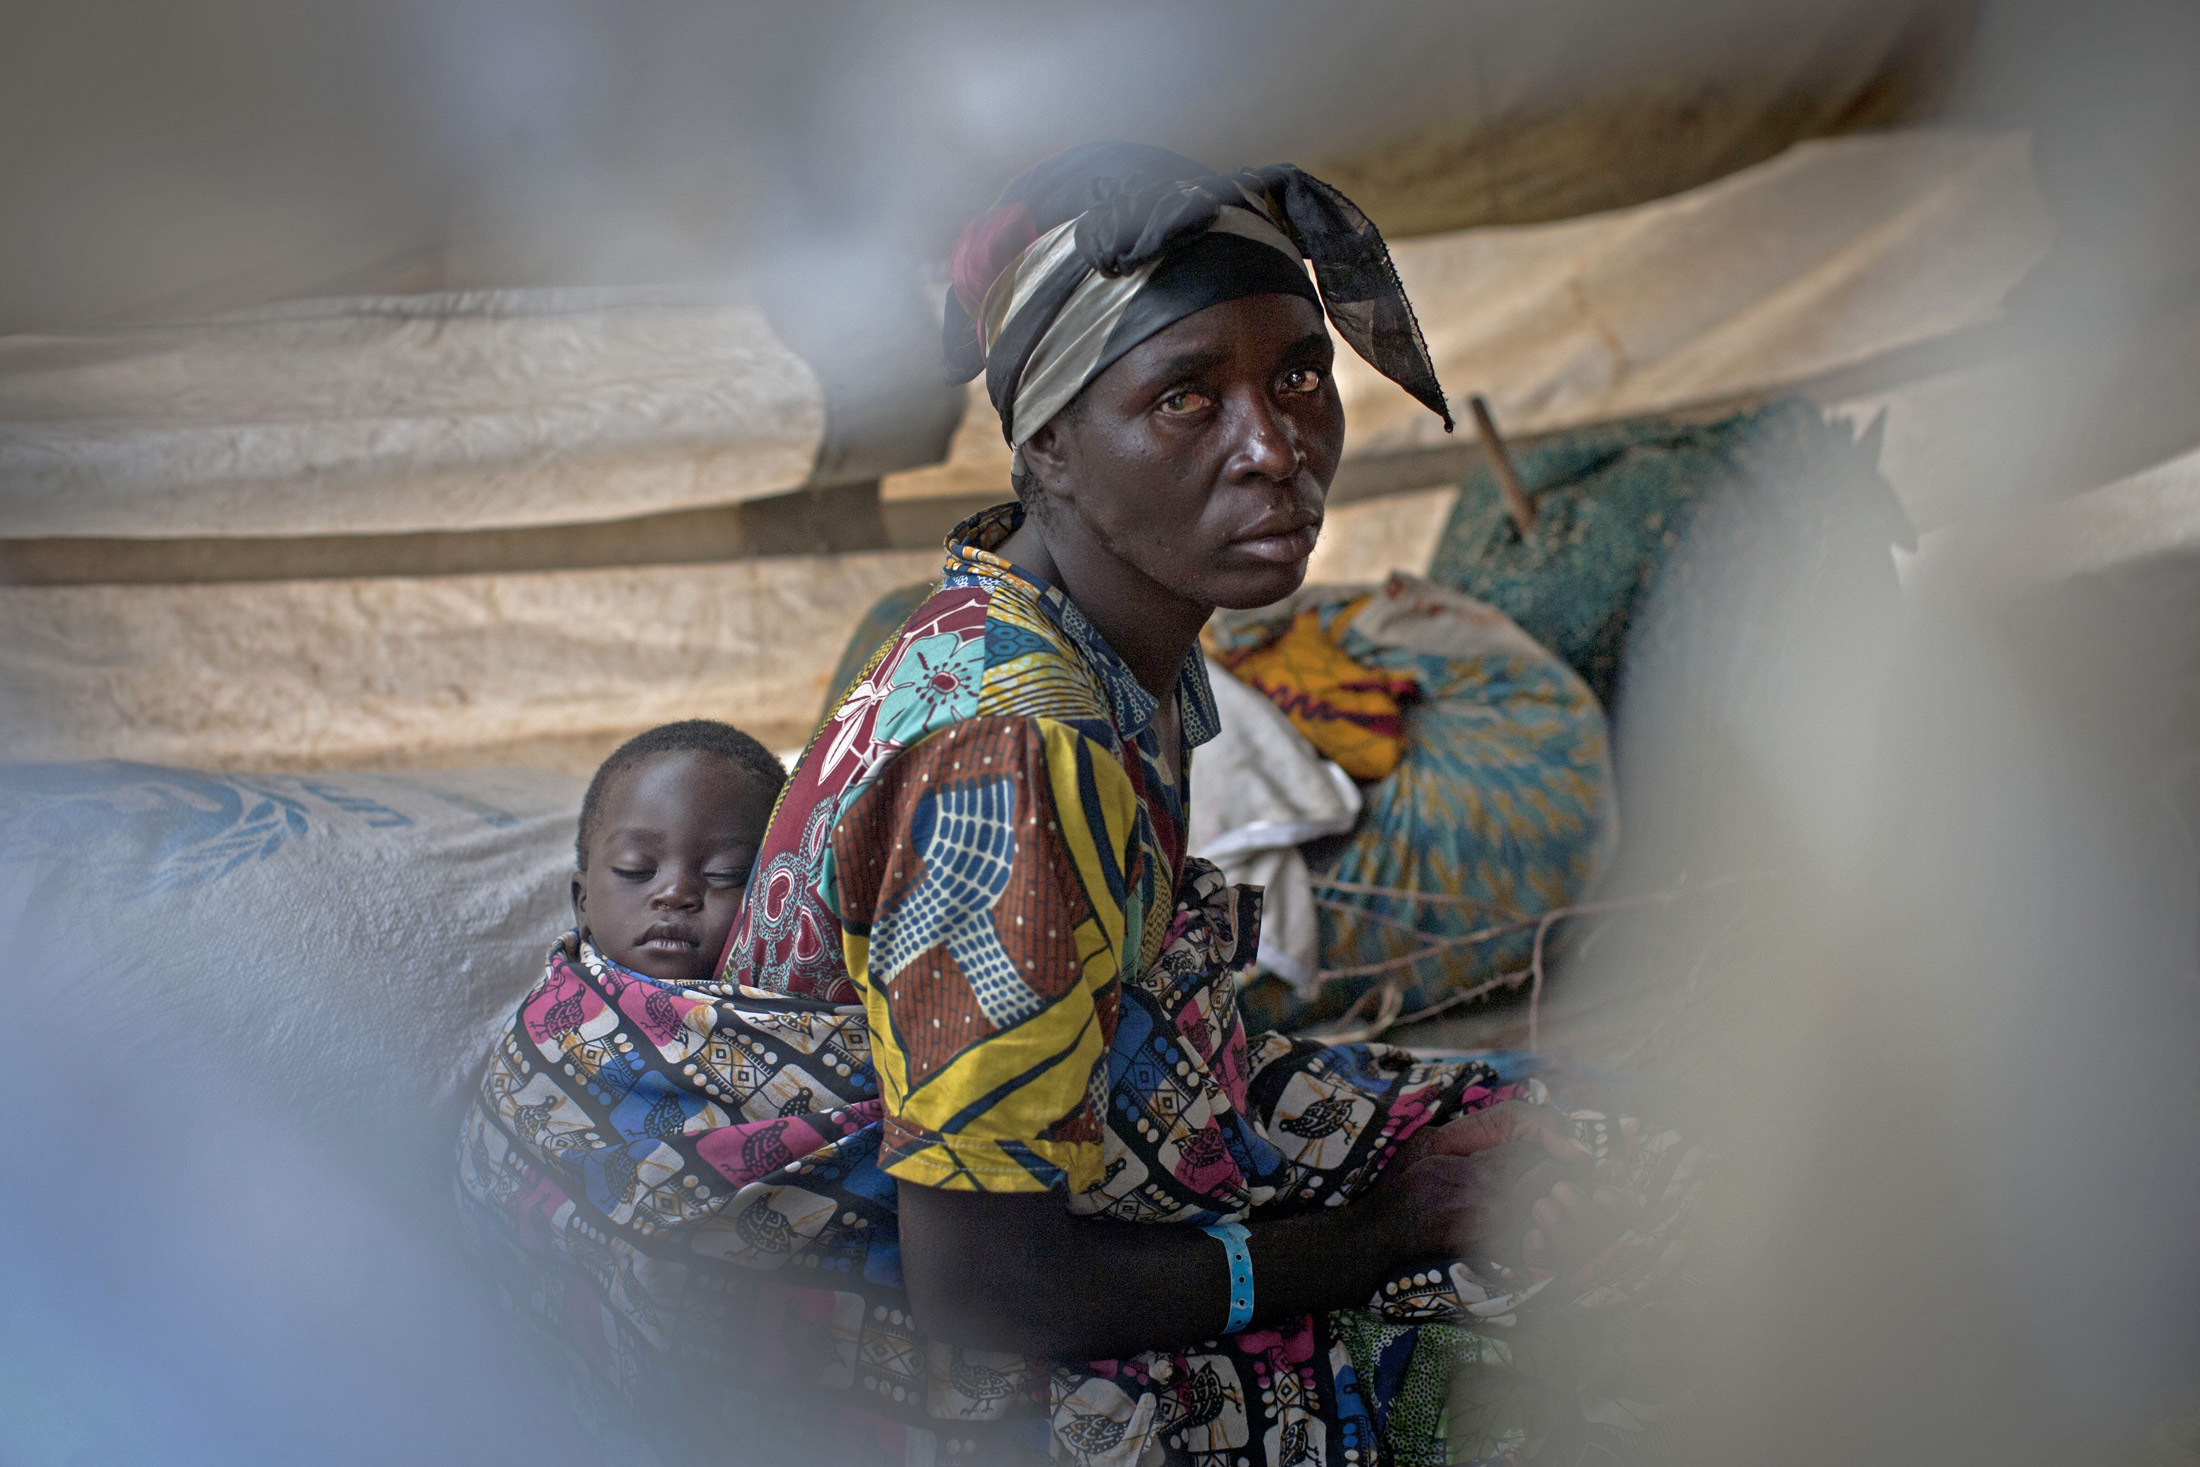 A woman and her baby take shelter at Don Bosco Orphanage in Goma, Democratic Republic of Congo. They have arrived from the town of Sake, where M23 rebels are fighting government troops. [November 2012]